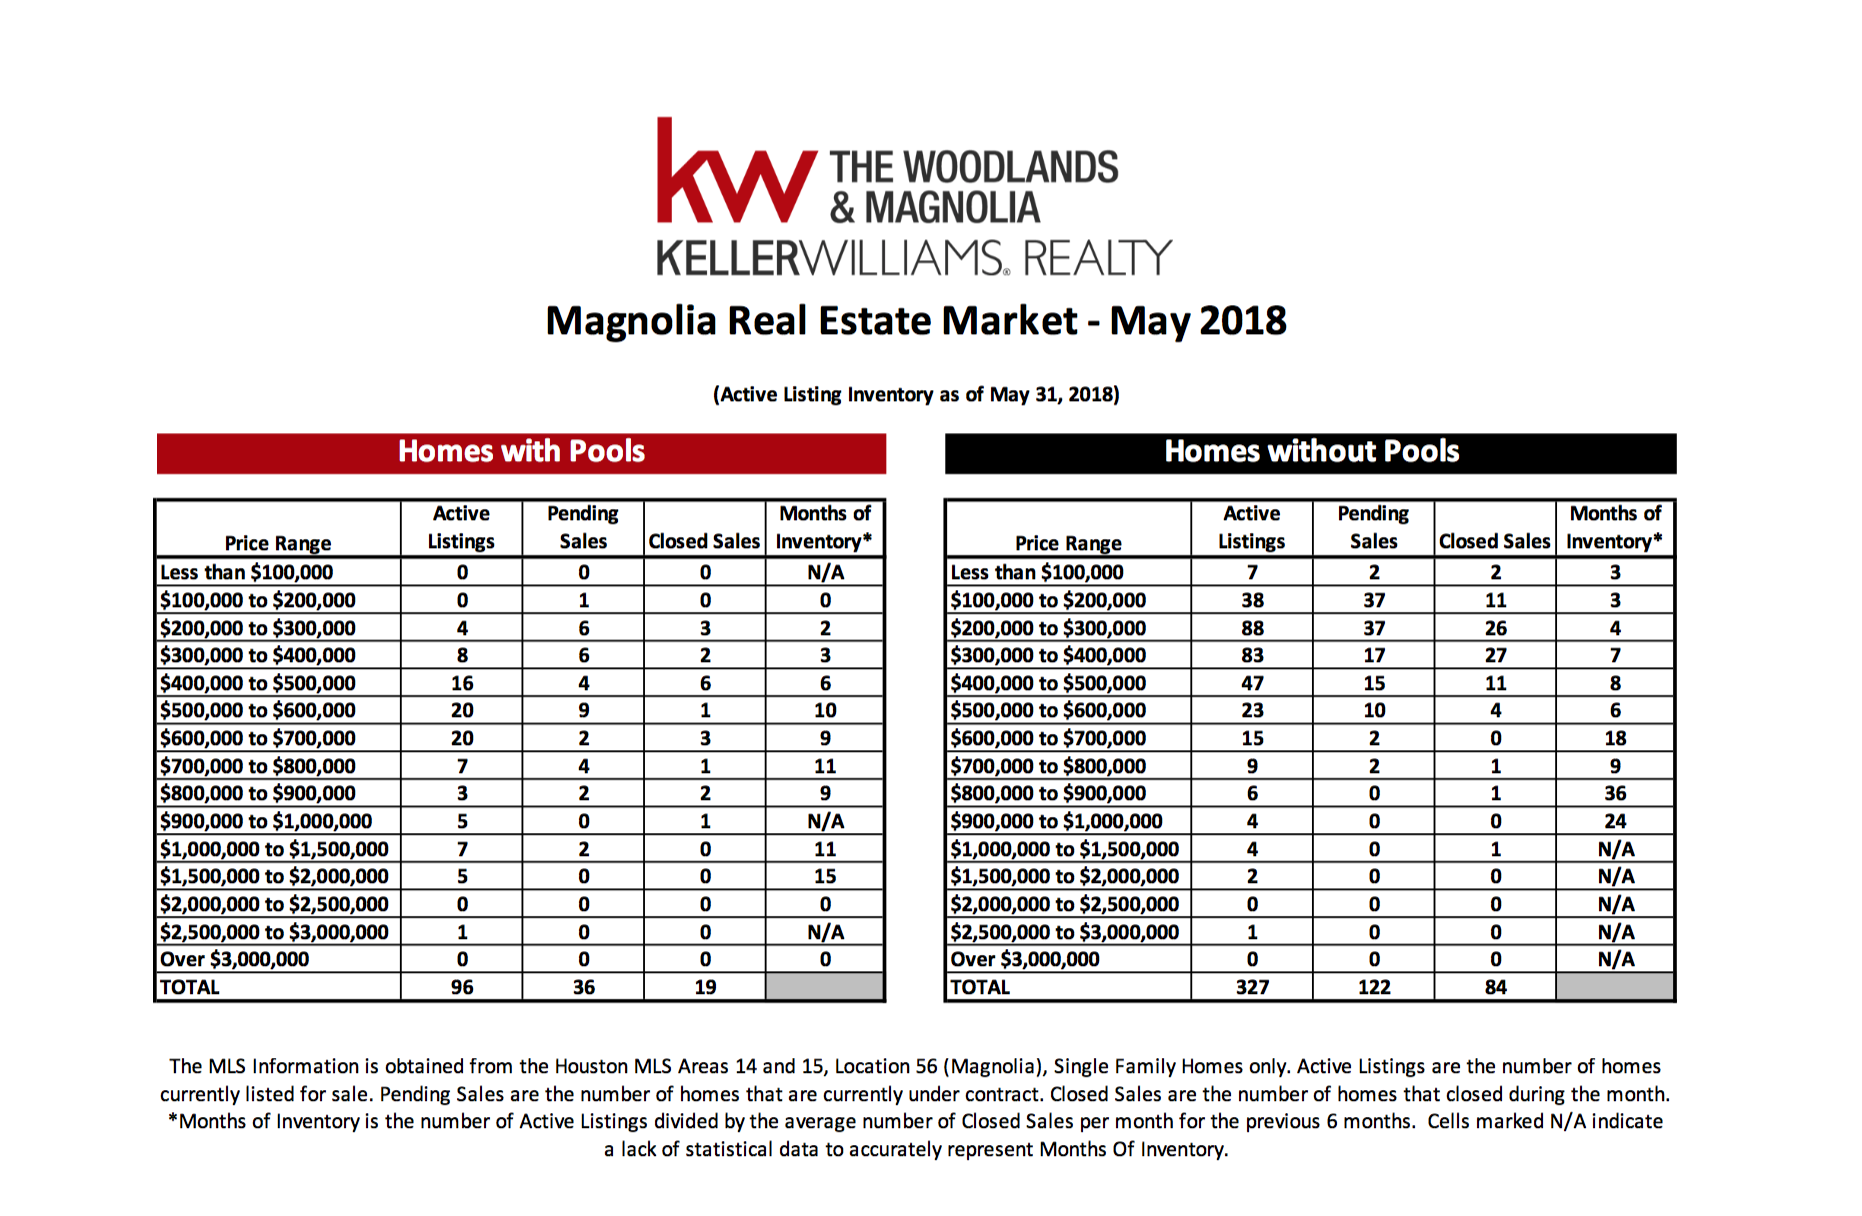 , May 2018 Marketwatch Report – Magnolia, KW Woodlands